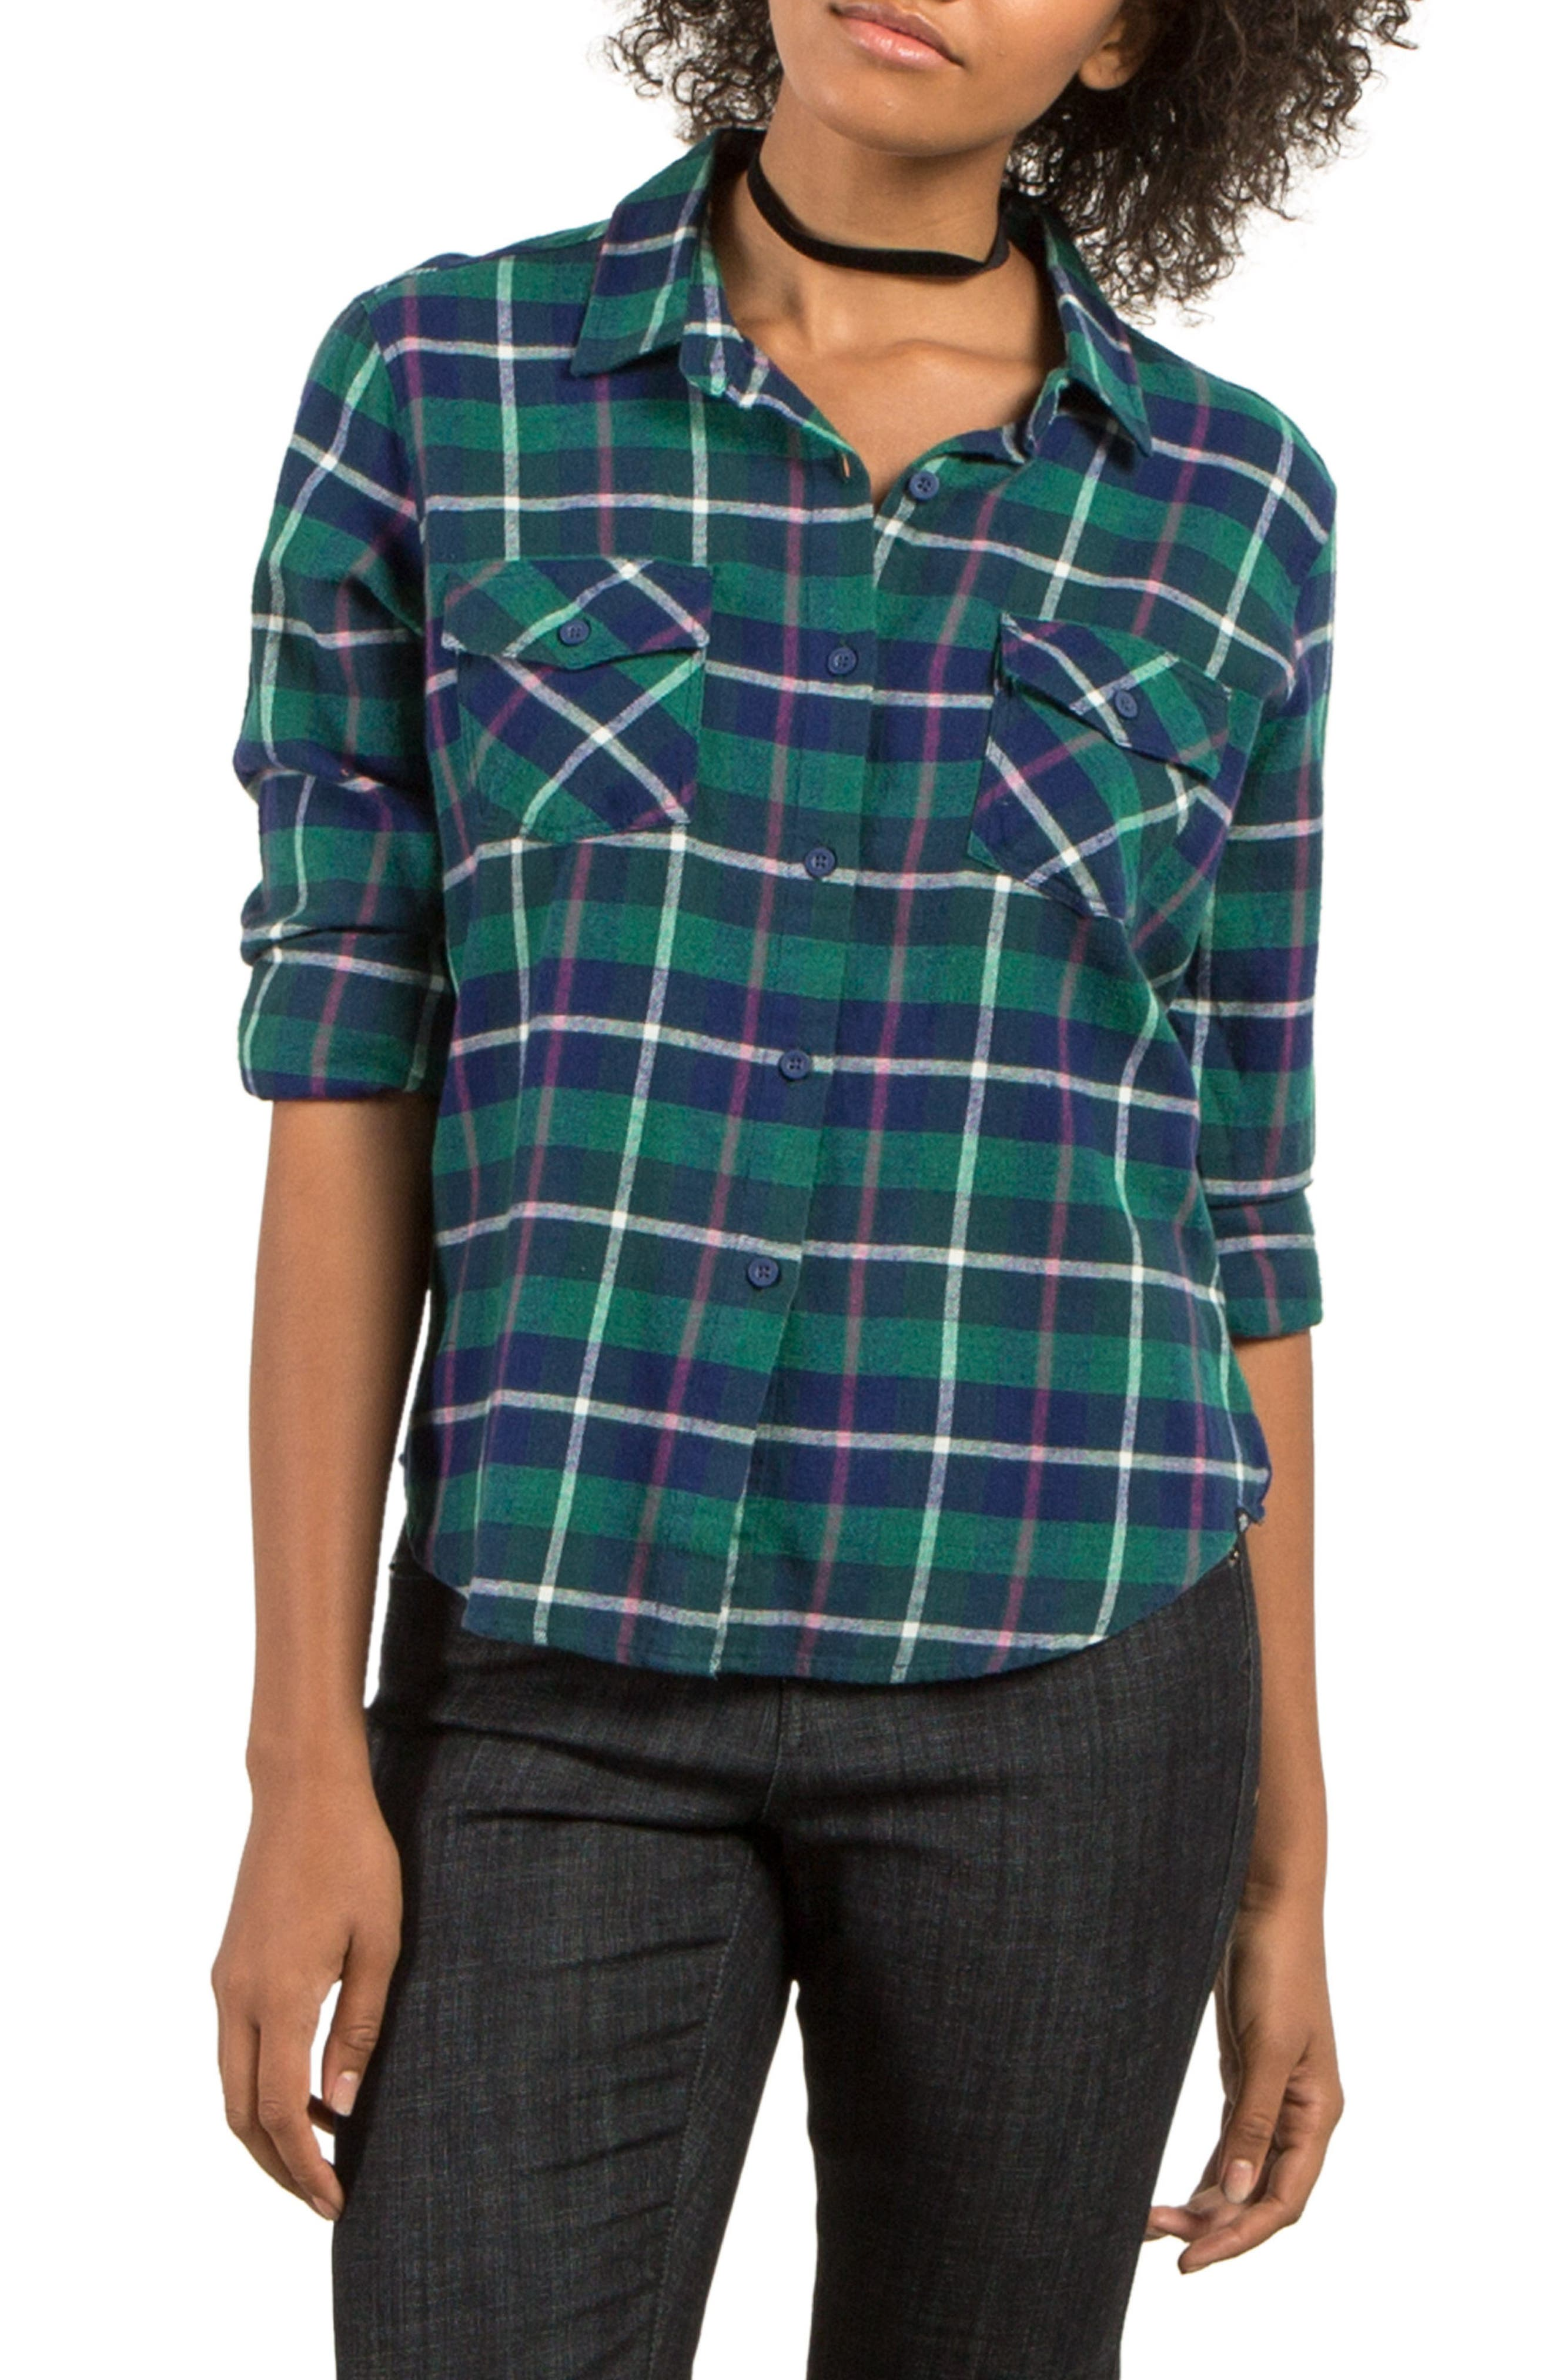 New Flame Plaid Flannel Shirt,                             Main thumbnail 1, color,                             302